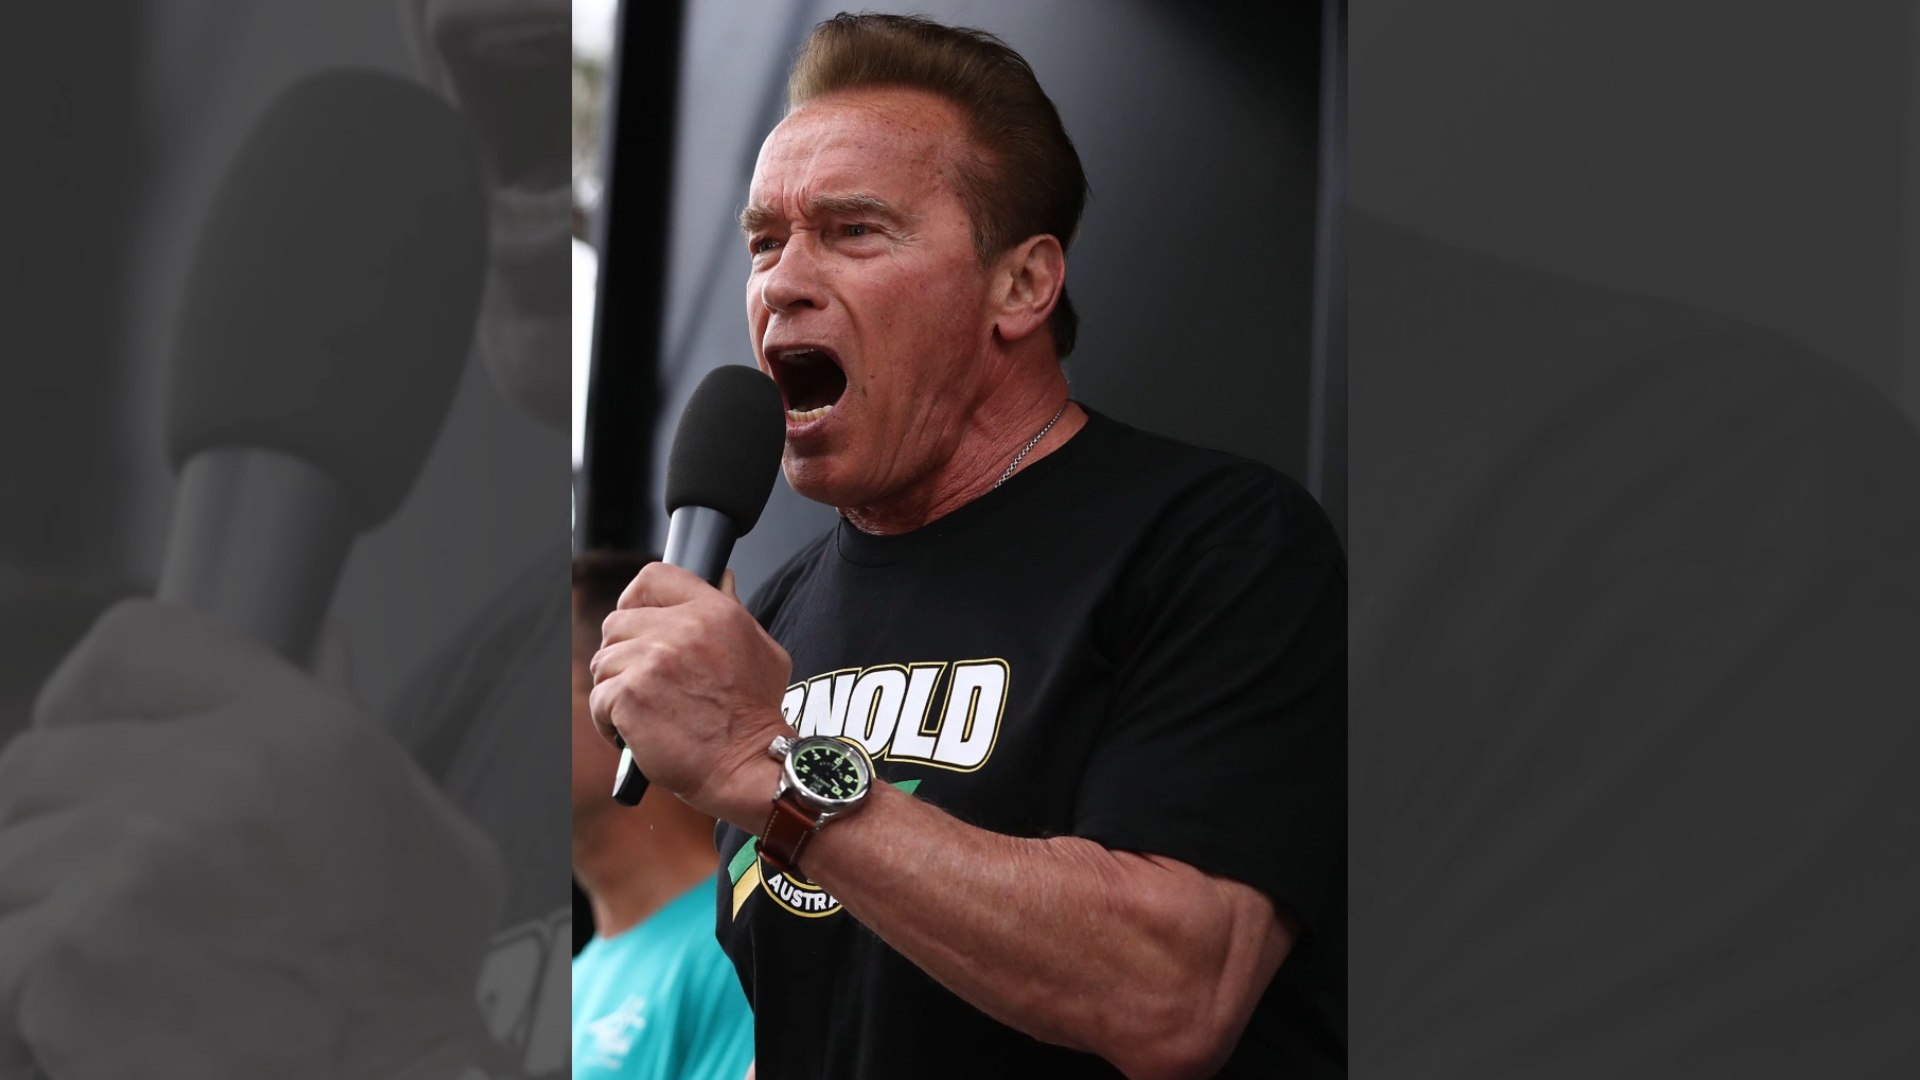 Arnold Schwarzenegger Celebrates Career With Rap Track